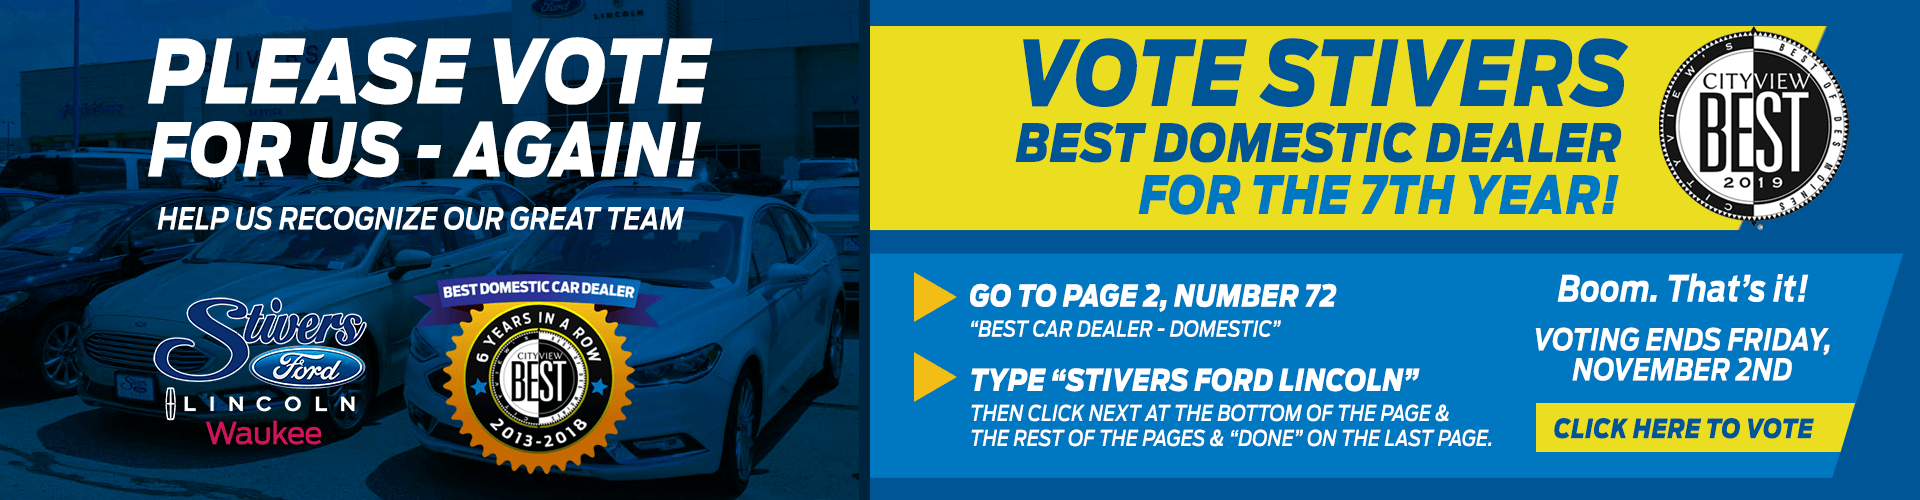 Vote for Stivers